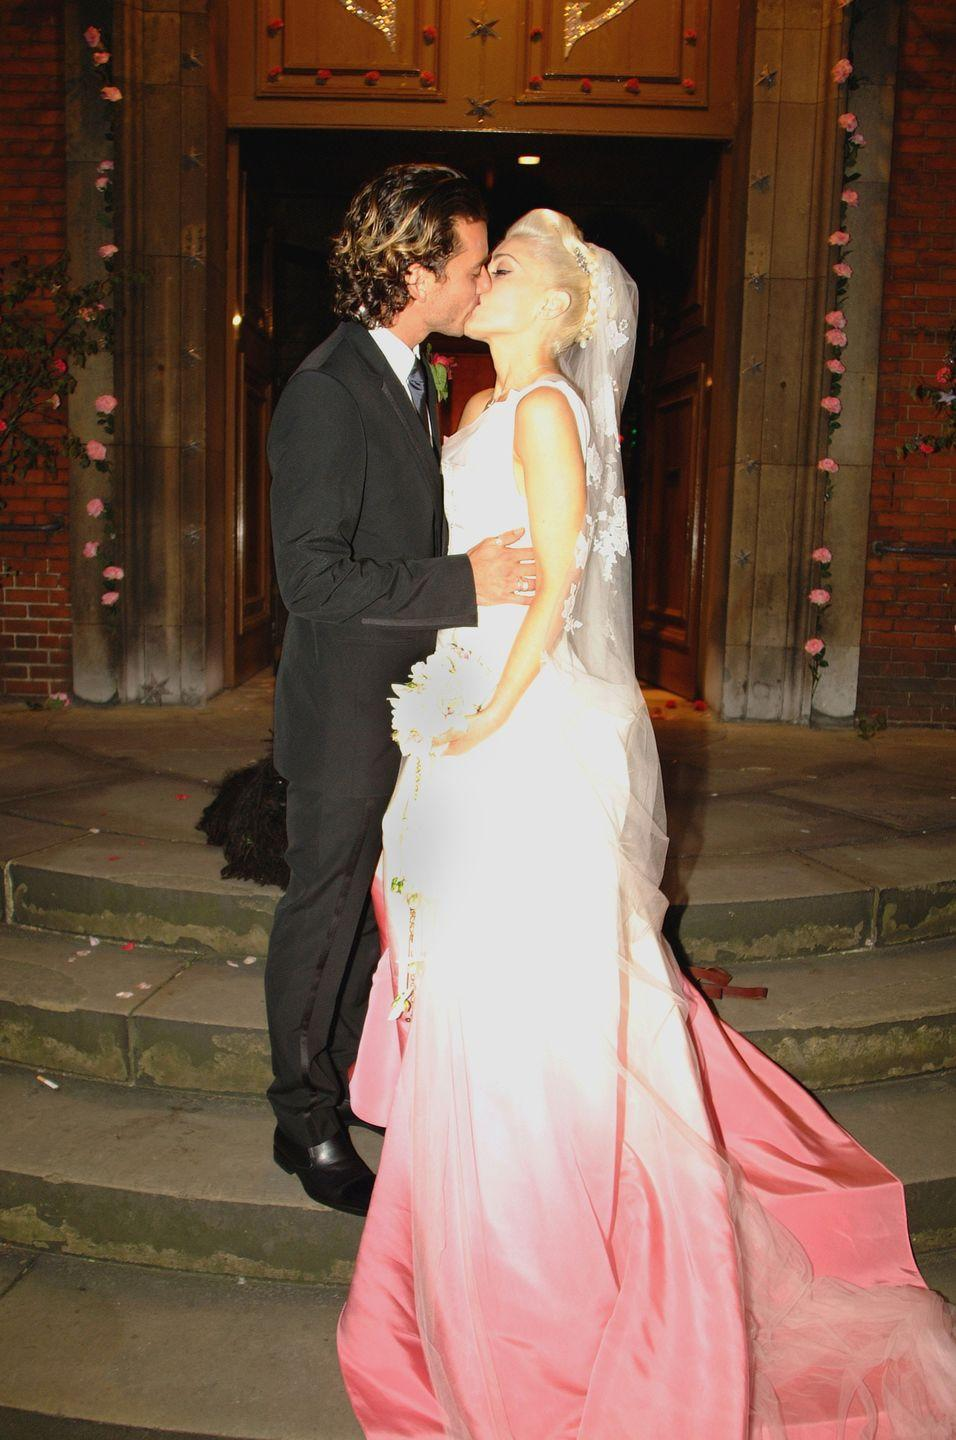 <p>In a move that only a true rockstar could pull off, No Doubt singer Gwen Stefani married Bush singer Gavin Rossdale while wearing a wild Christian Dior dress designed by John Galliano that featured a striking white-to-pink gradient and a lengthy train.</p>